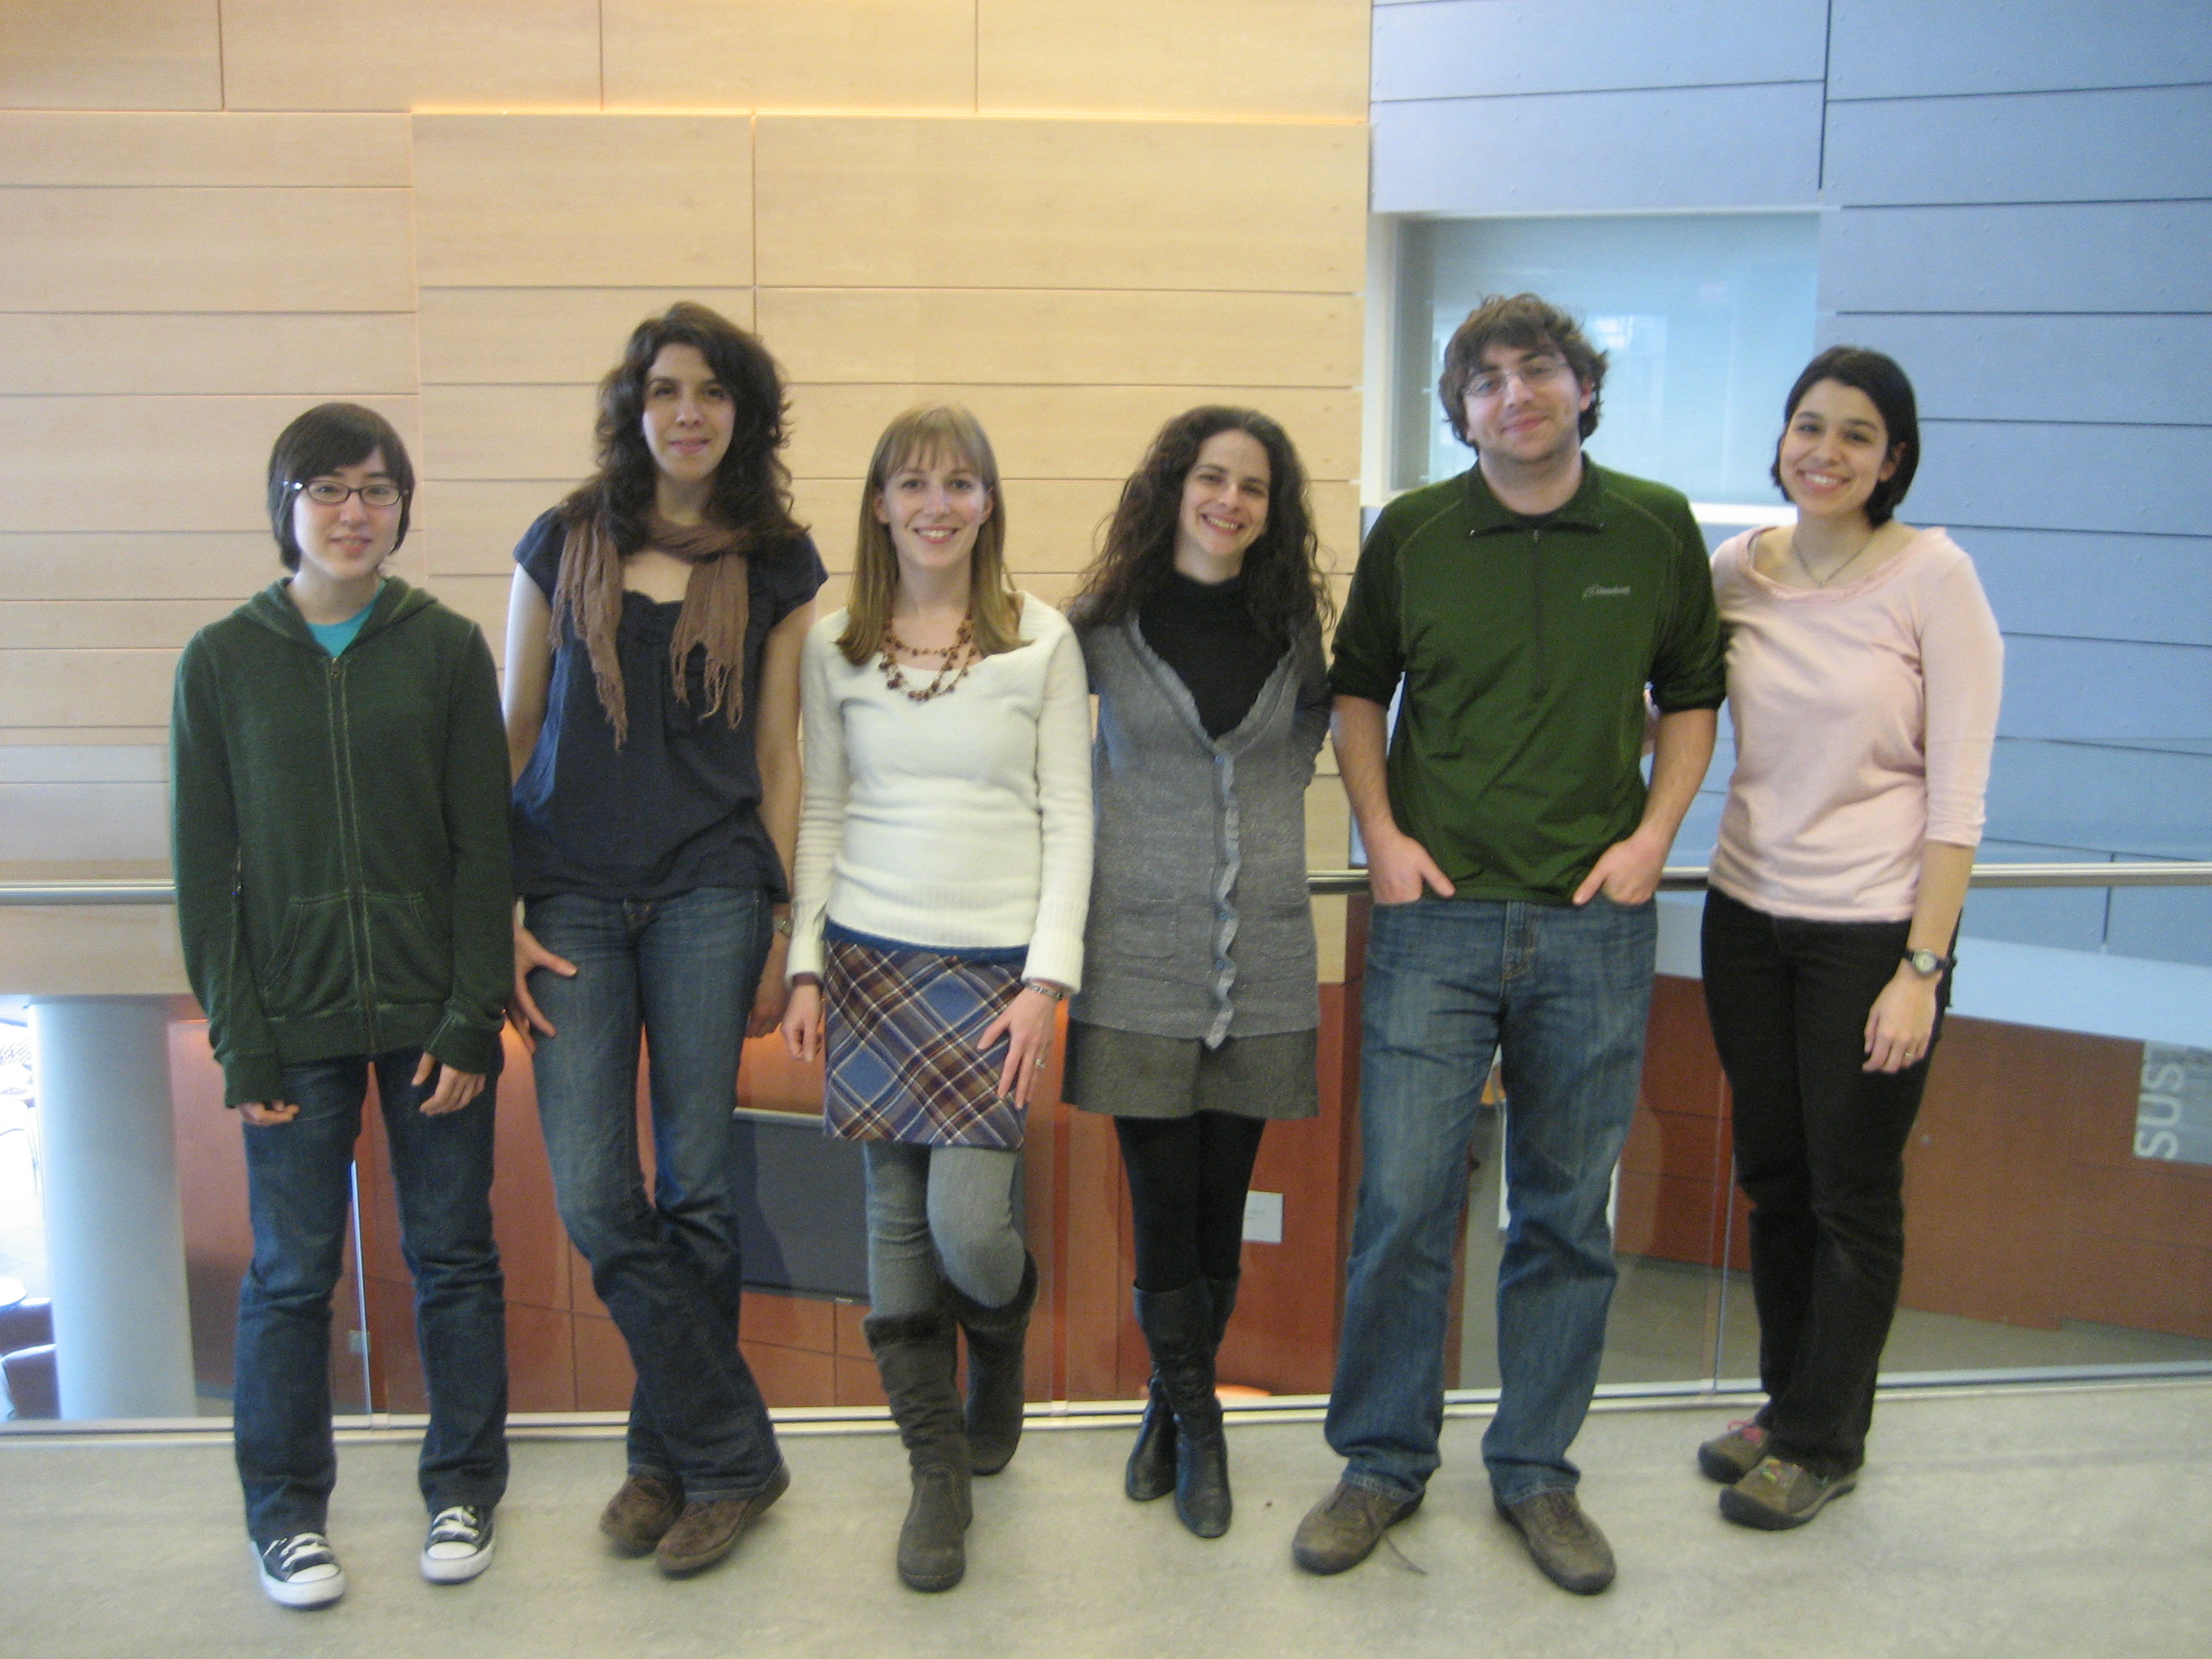 The Original Lab Photo - Winter 2011